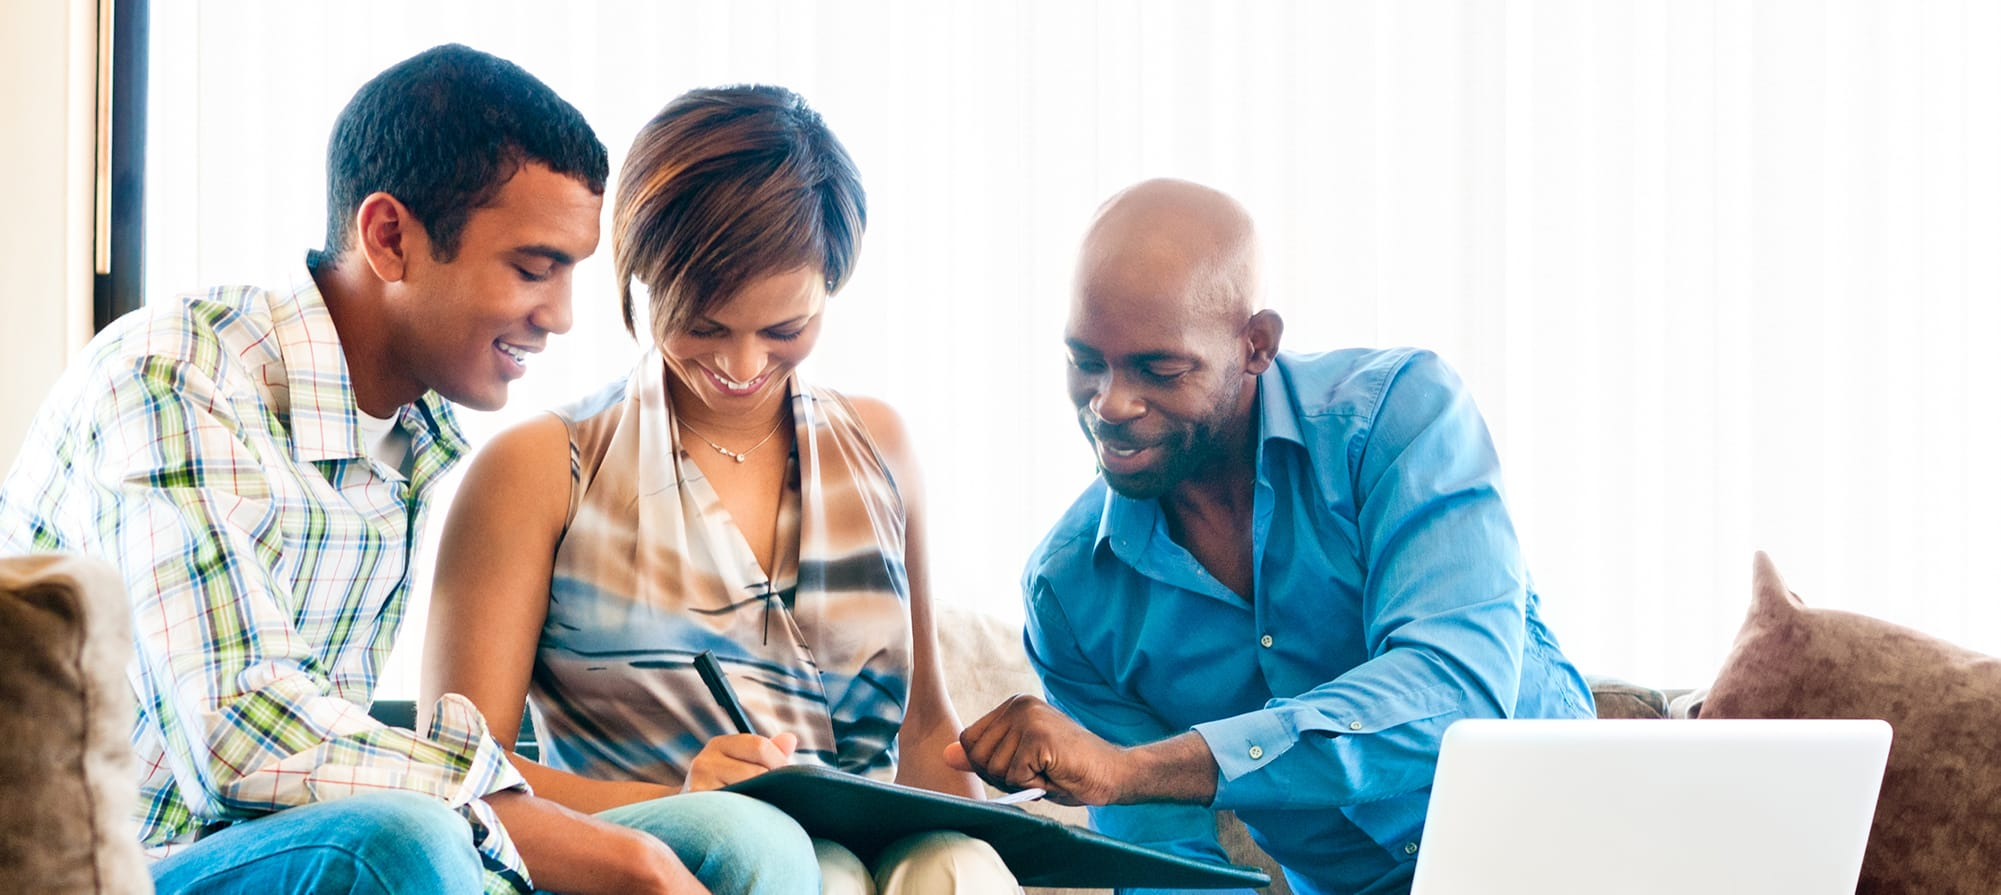 Cover photo depicting a man and woman completing a form with the help of their insurance agent